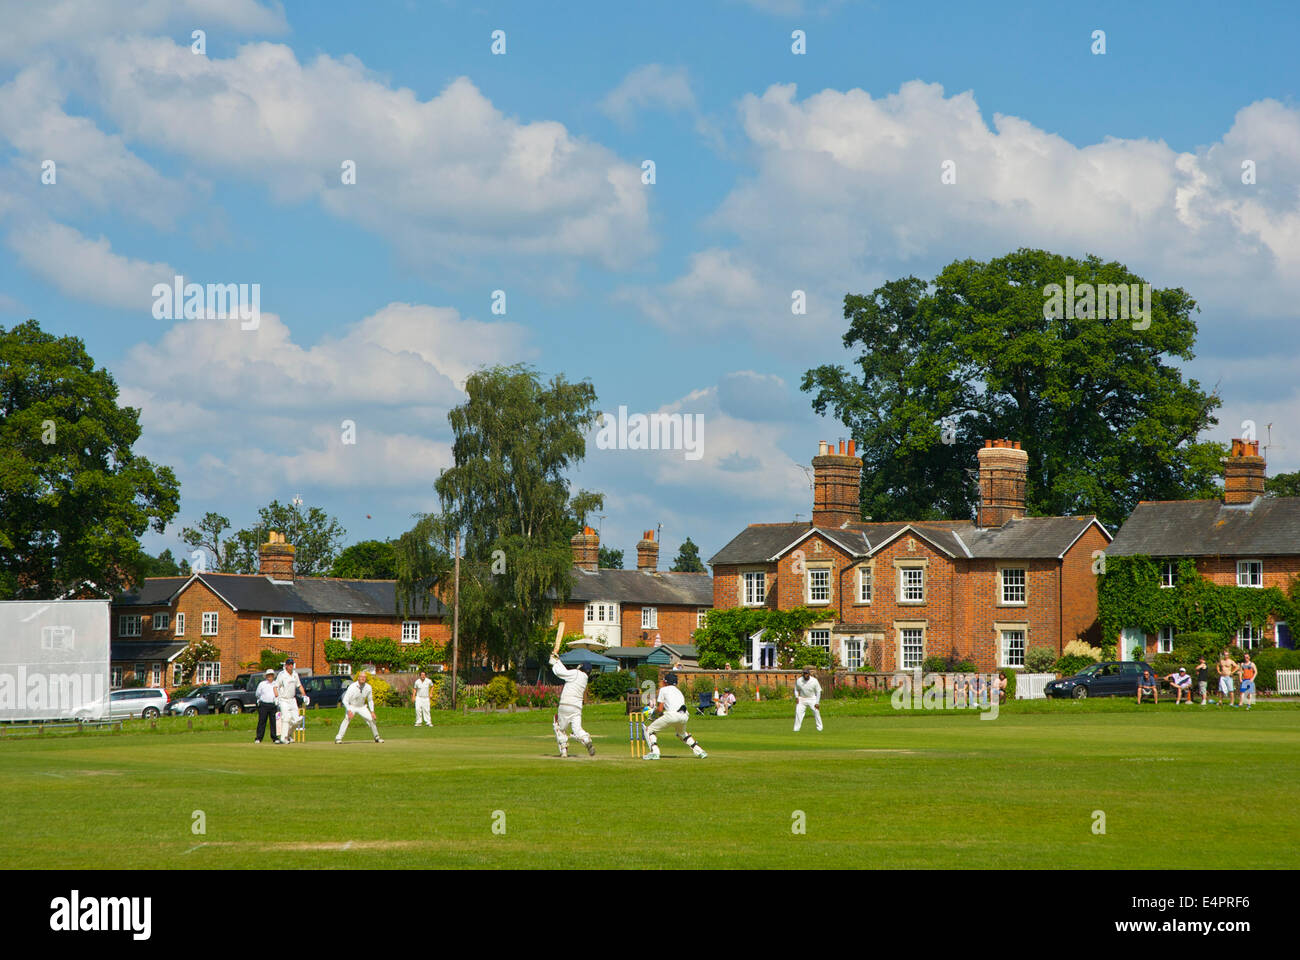 Cricket match in Hartley Wintney, Hampshire, England UK - Stock Image